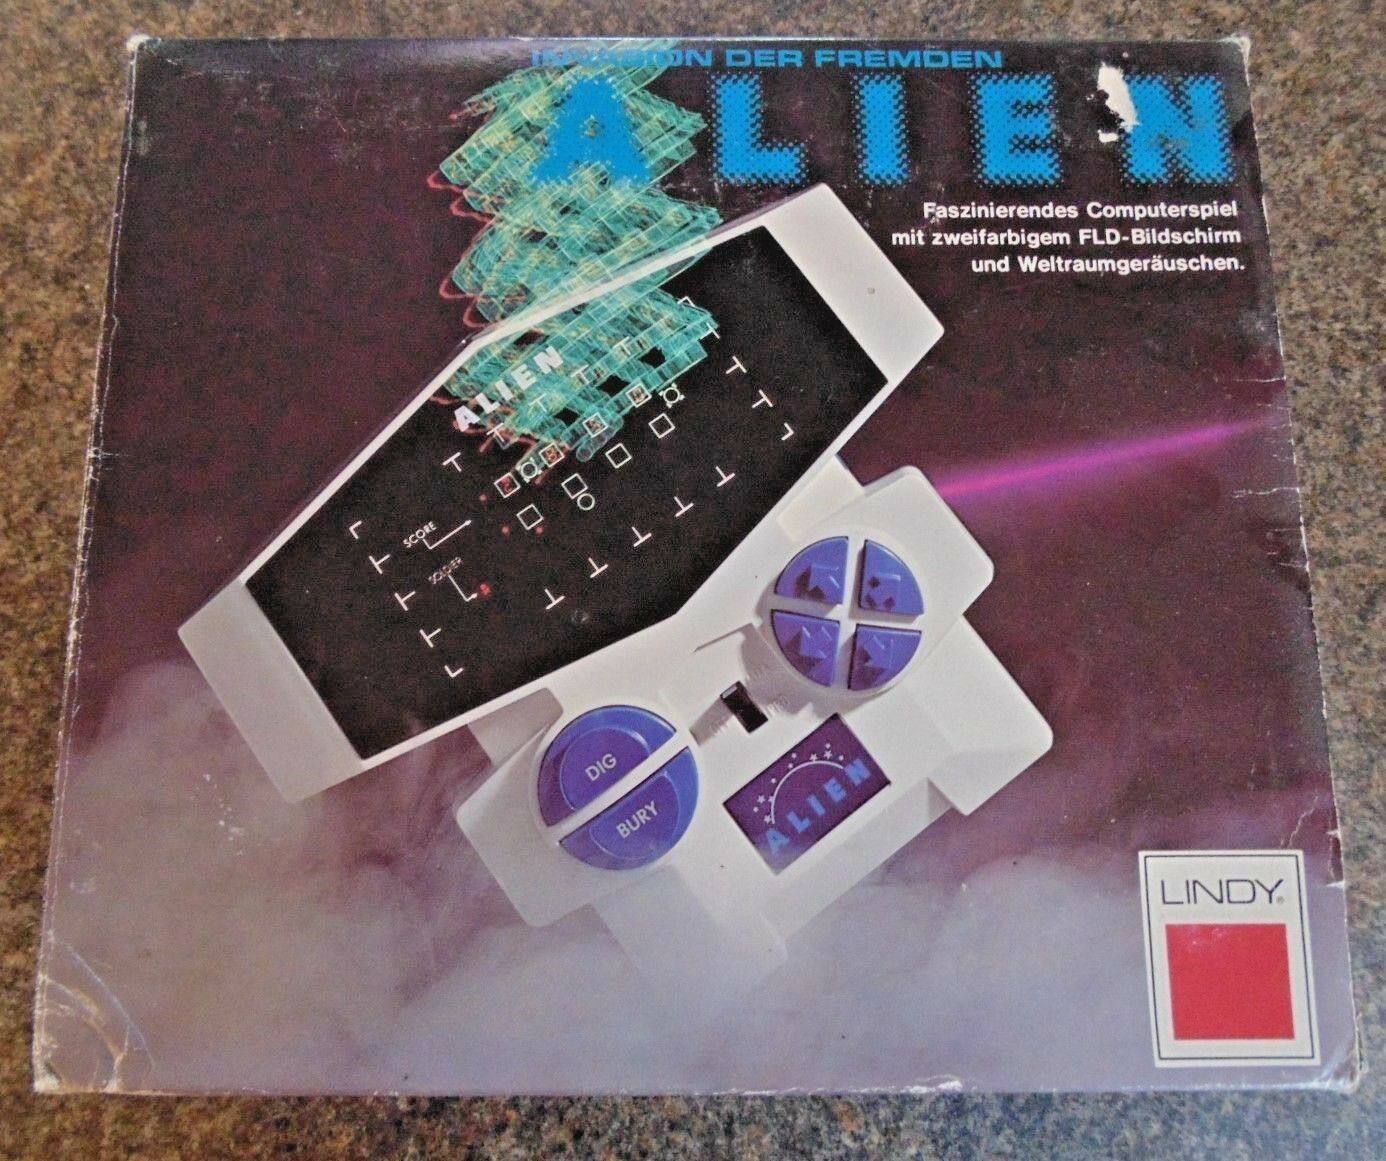 ALIEN LINDY LSI HANDHELD TABLETOP GAME 1981 SCARCE BOXED WORKING GERMAN VERSION